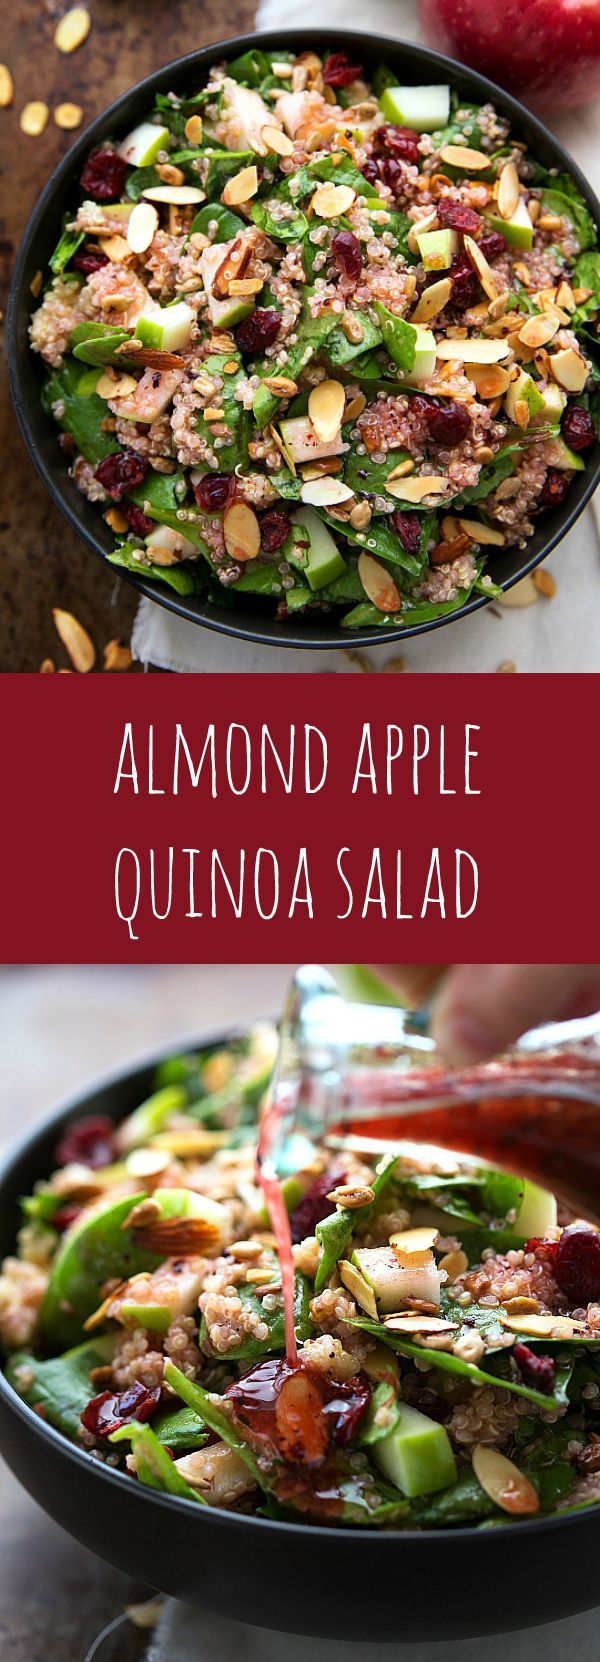 Delicious and Easy Almond Apple Quinoa Salad with the BEST raspberry vinaigrette| healthy recipe ideas @xhealthyrecipex |